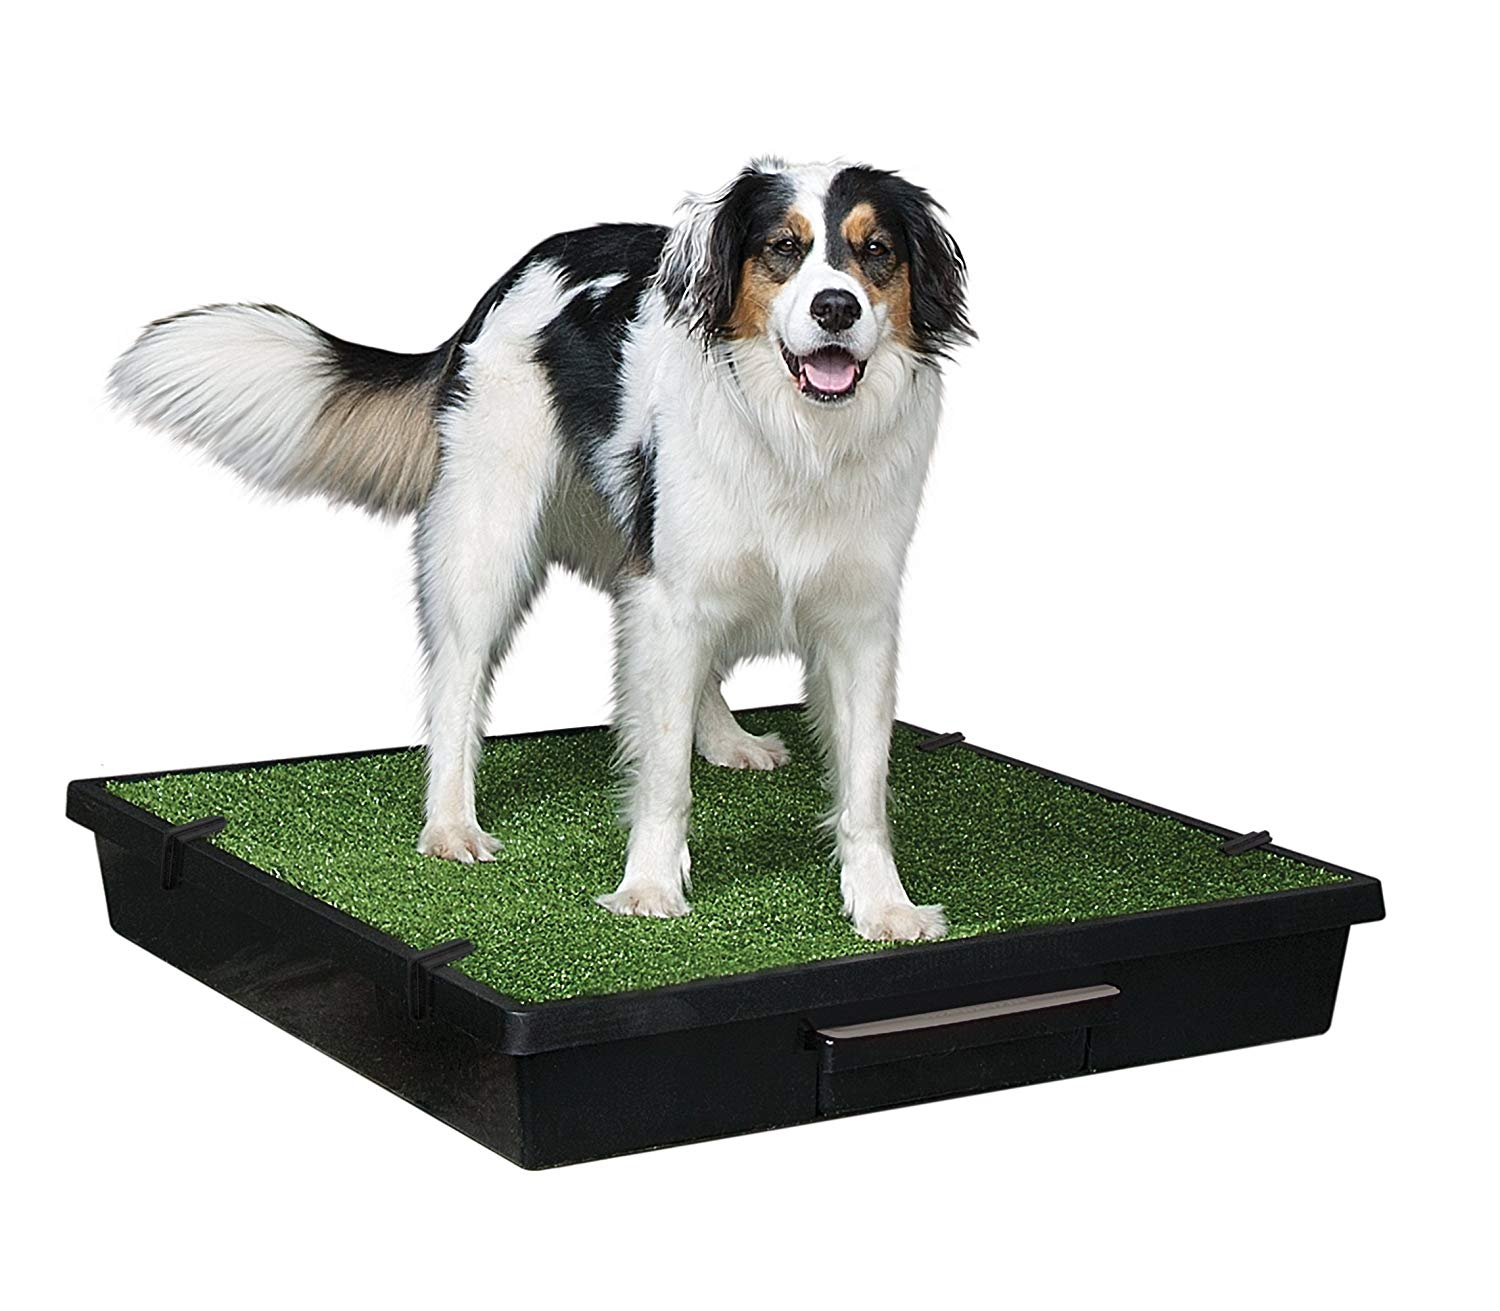 PetSafe Pet Loo Portable Dog Potty